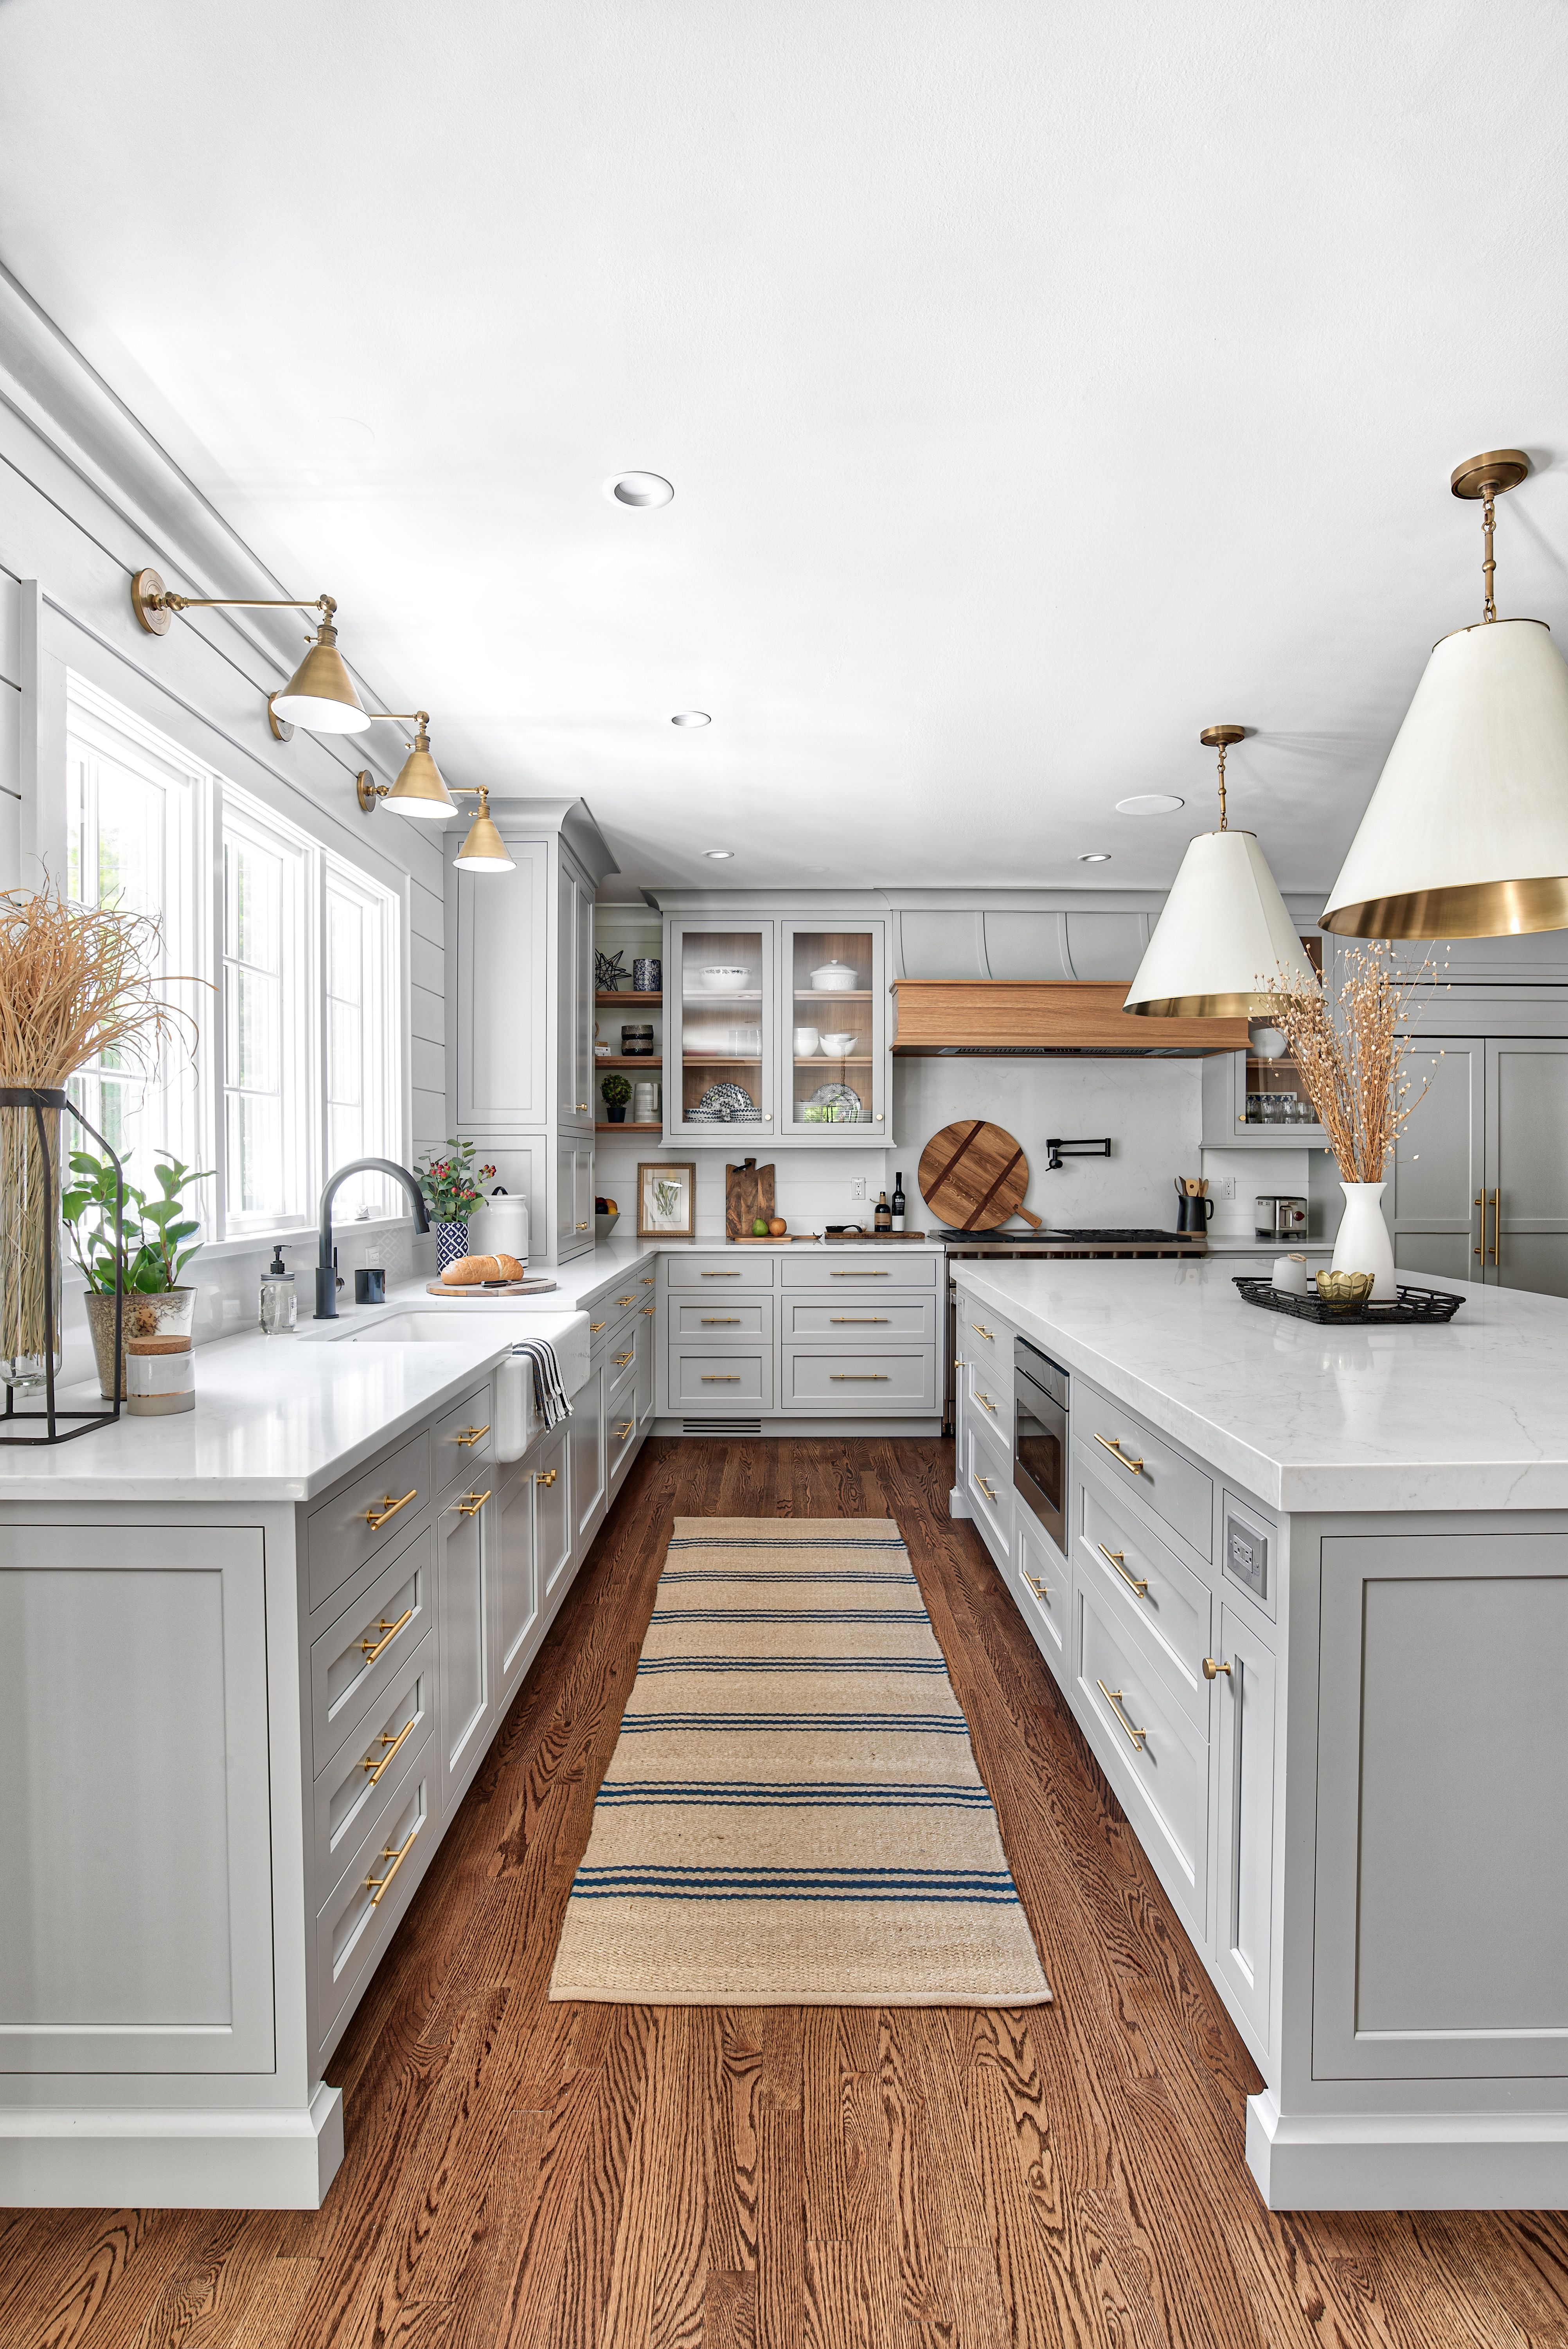 Gray Cabinetry & Brass Hardware